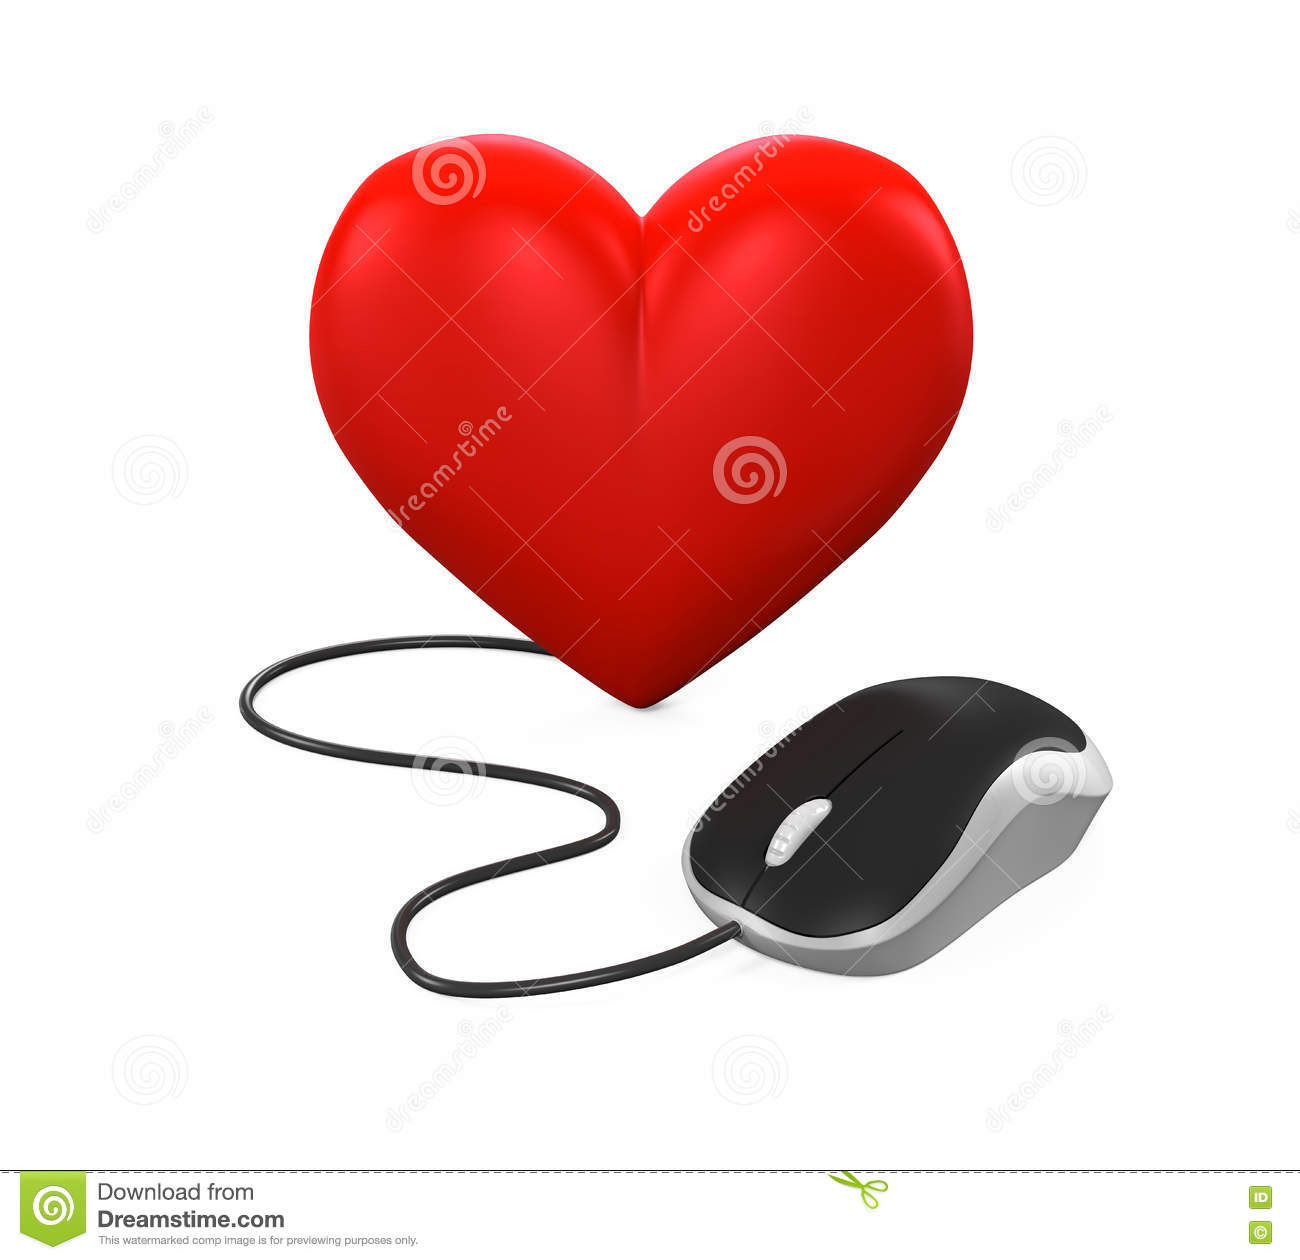 3bca1956050 Heart Shaped And Computer Mouse Stock Illustration - Illustration of ...